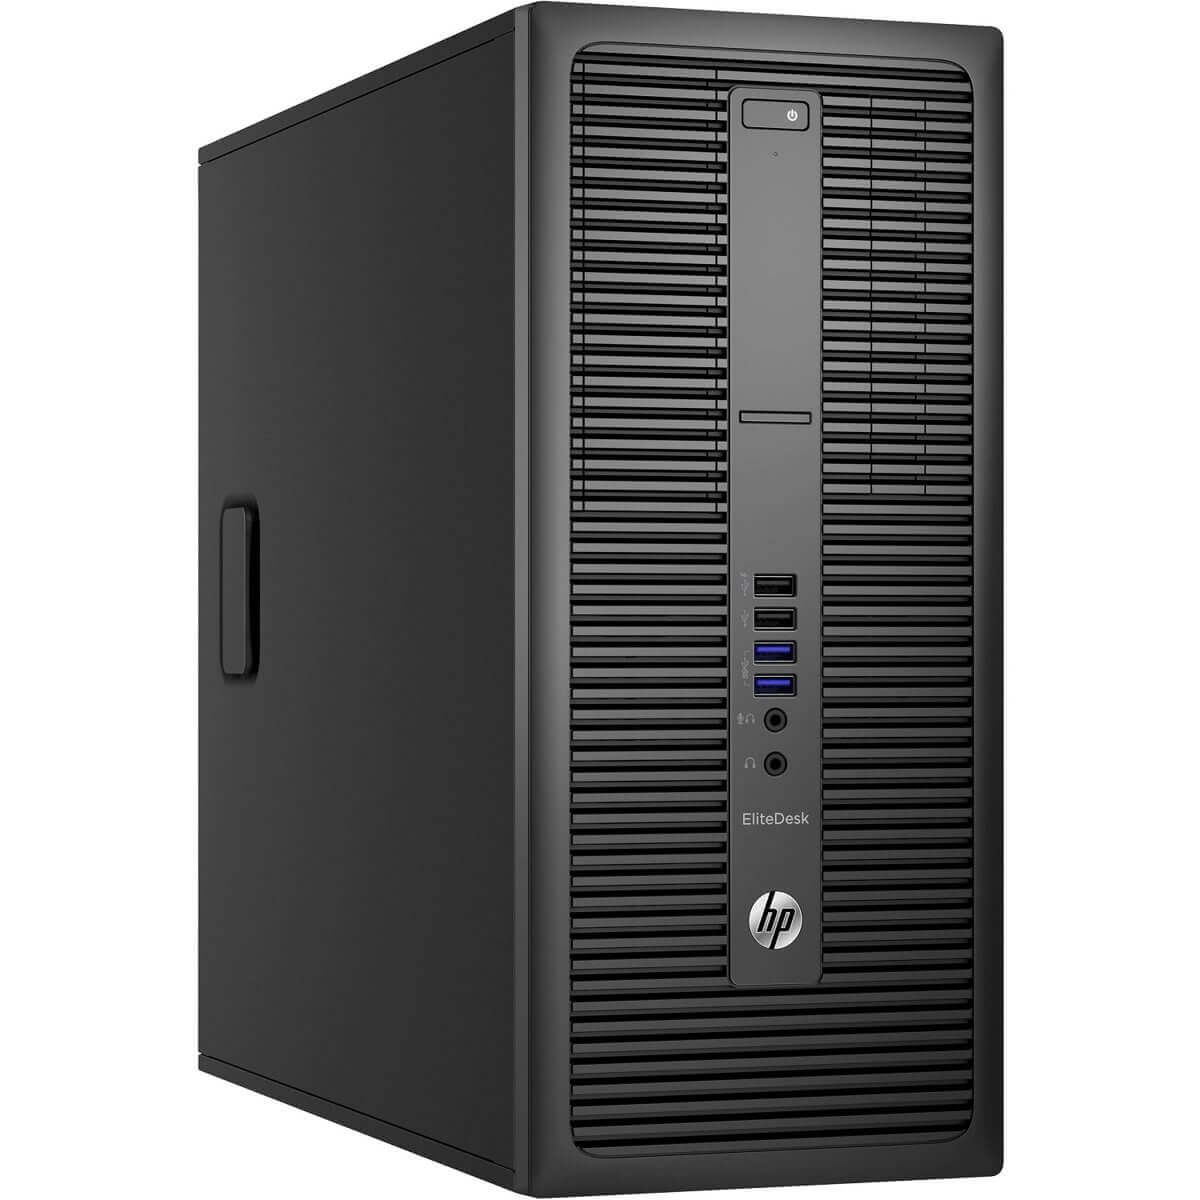 HP ELITEDESK 800 G2 TOWER I5-6400 2.7 / 16384 MB DDR4 / 256 GB SSD NOWY + 500 GB / WINDOWS 10 PRO